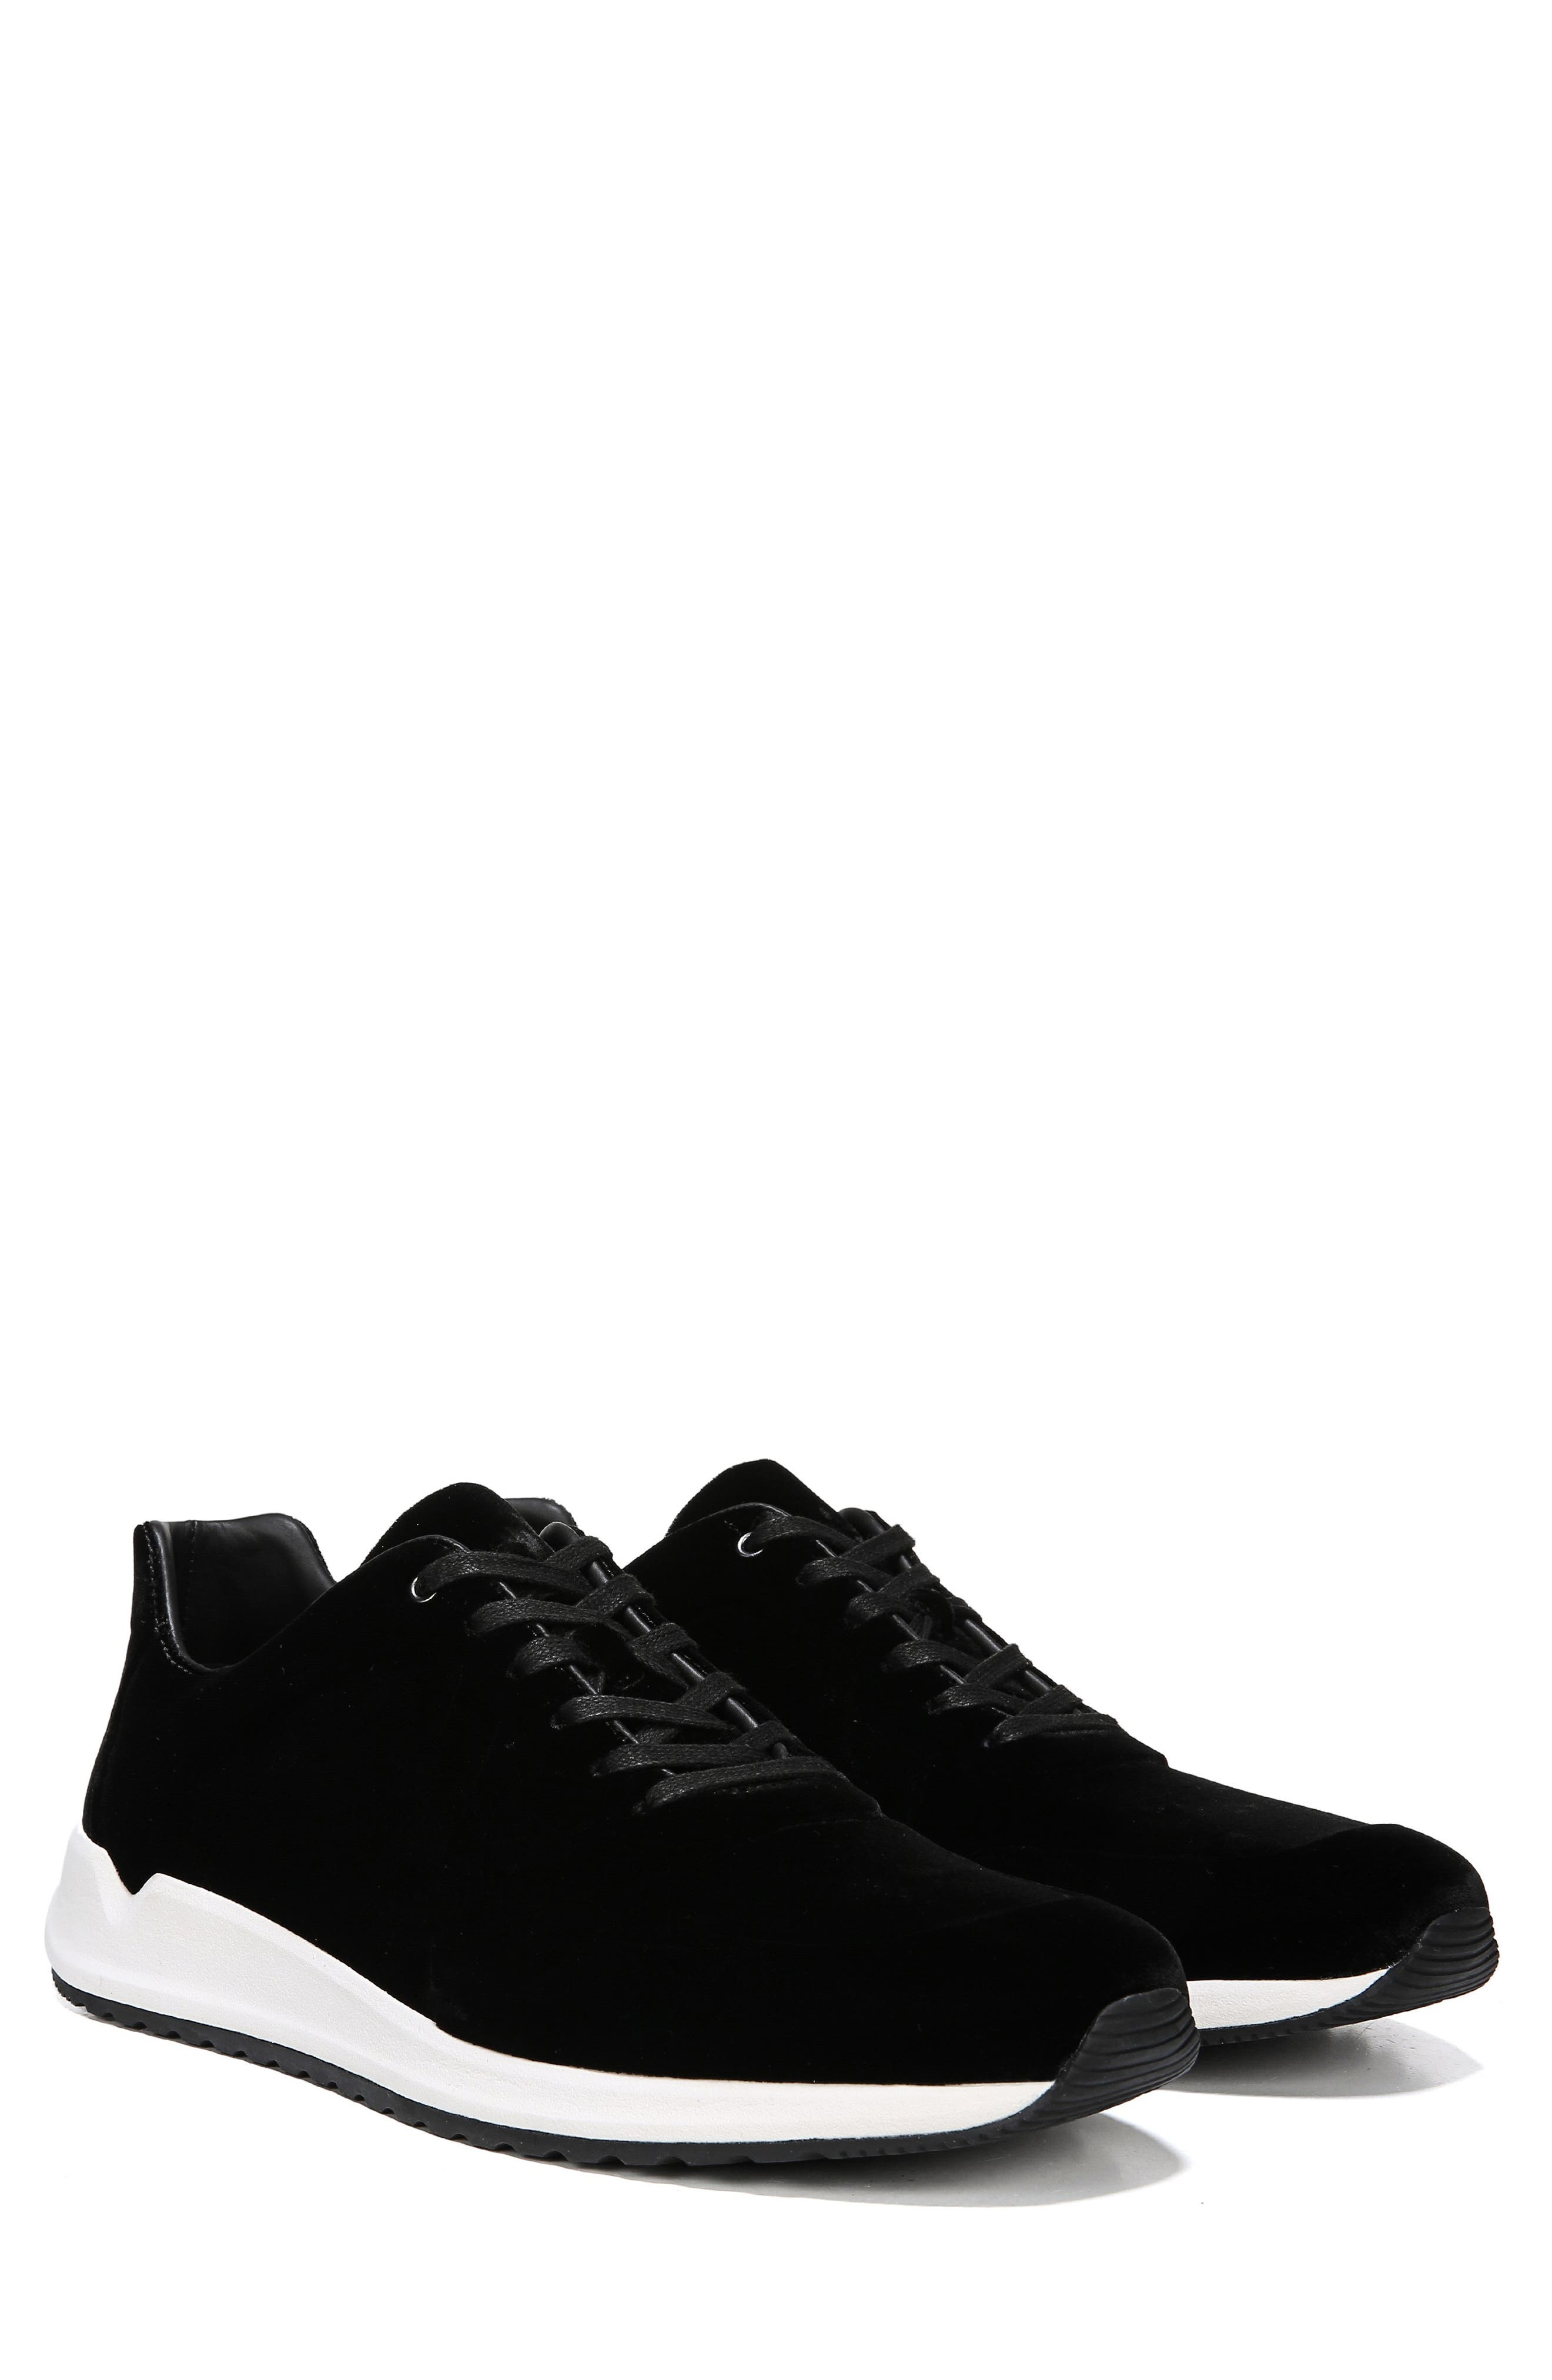 Garret Sneaker,                             Alternate thumbnail 9, color,                             BLACK